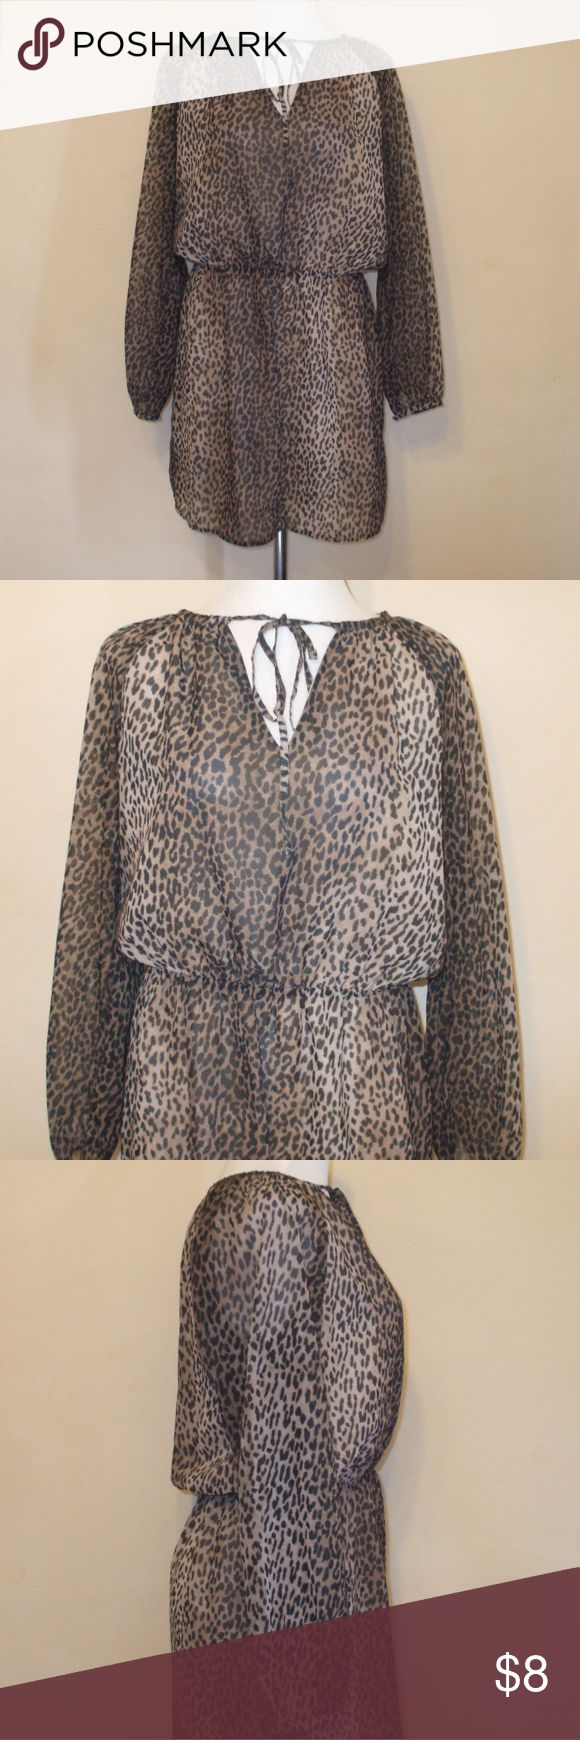 M N G Suit Animal Print Keyhole Dress M N G Suit Collection dress Size 4 Beige, brown, & black animal print Long sleeves - V neck with keyhole and tie  It is lined (except for the sleeves) 100% polyester Excellent pre-owned condition smoking home M N G Suit Collection Dresses